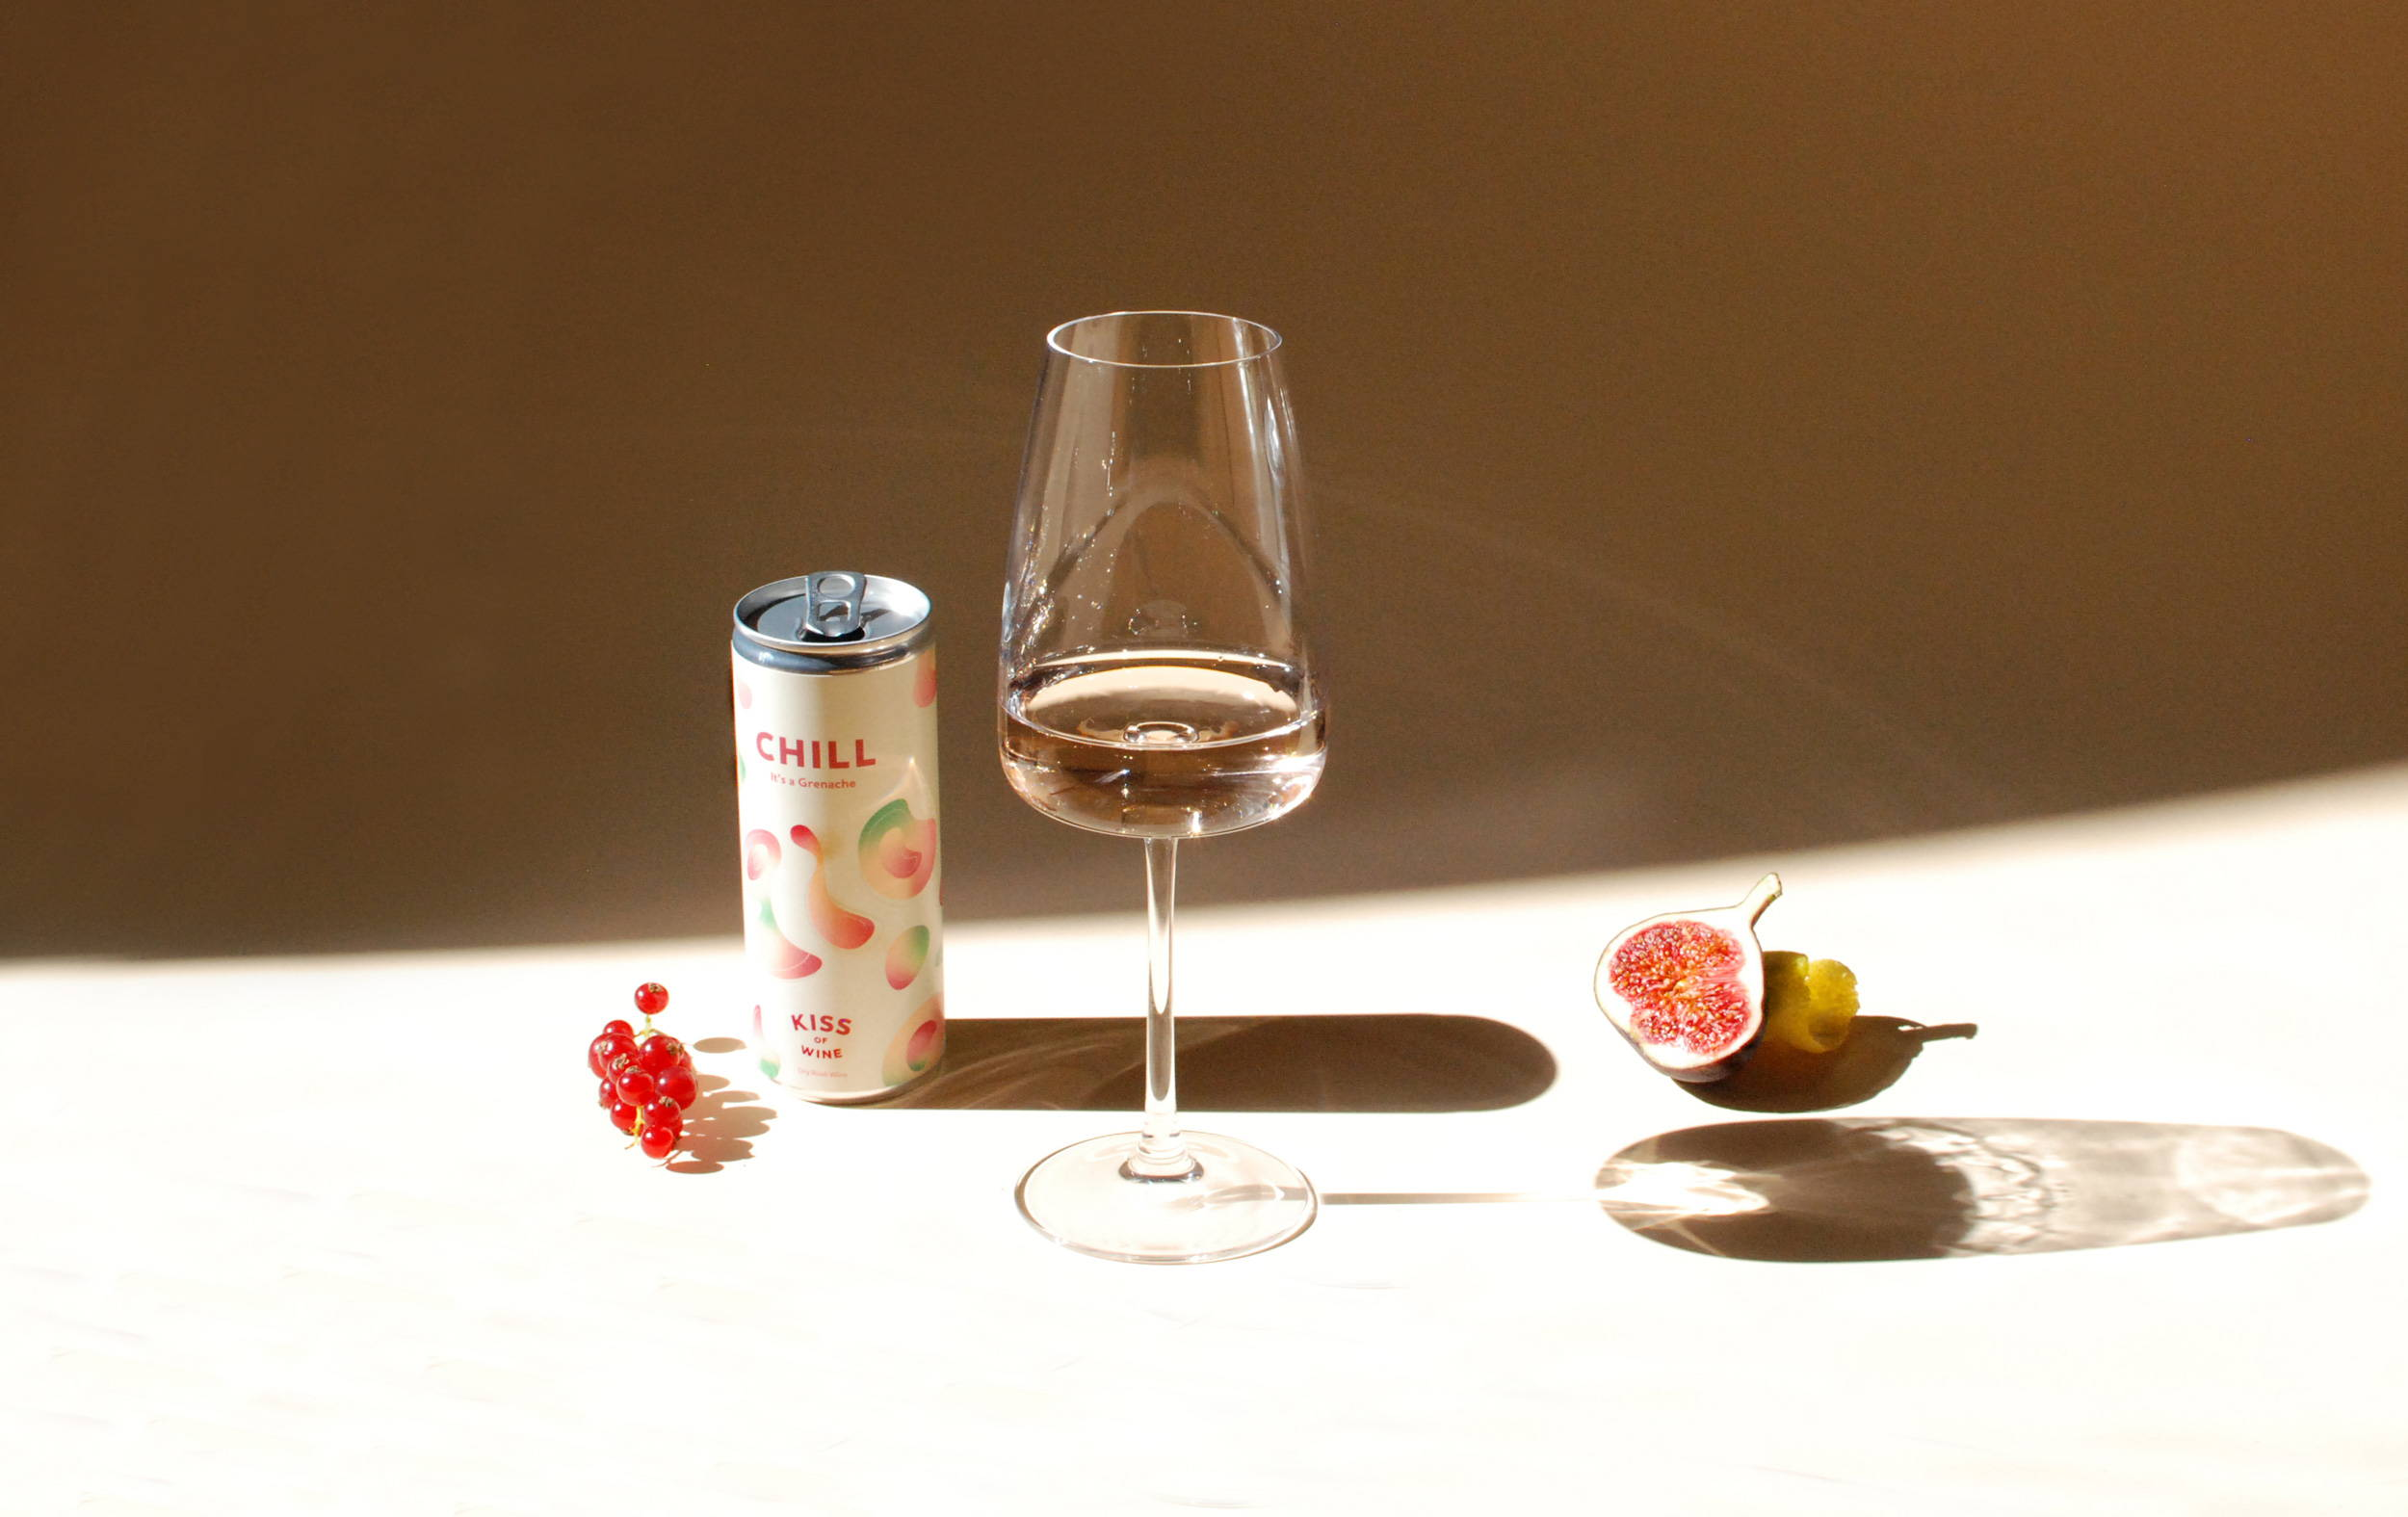 Poured glass of Chill Caladoc Rose surrounded by can, red berries and half a fig.